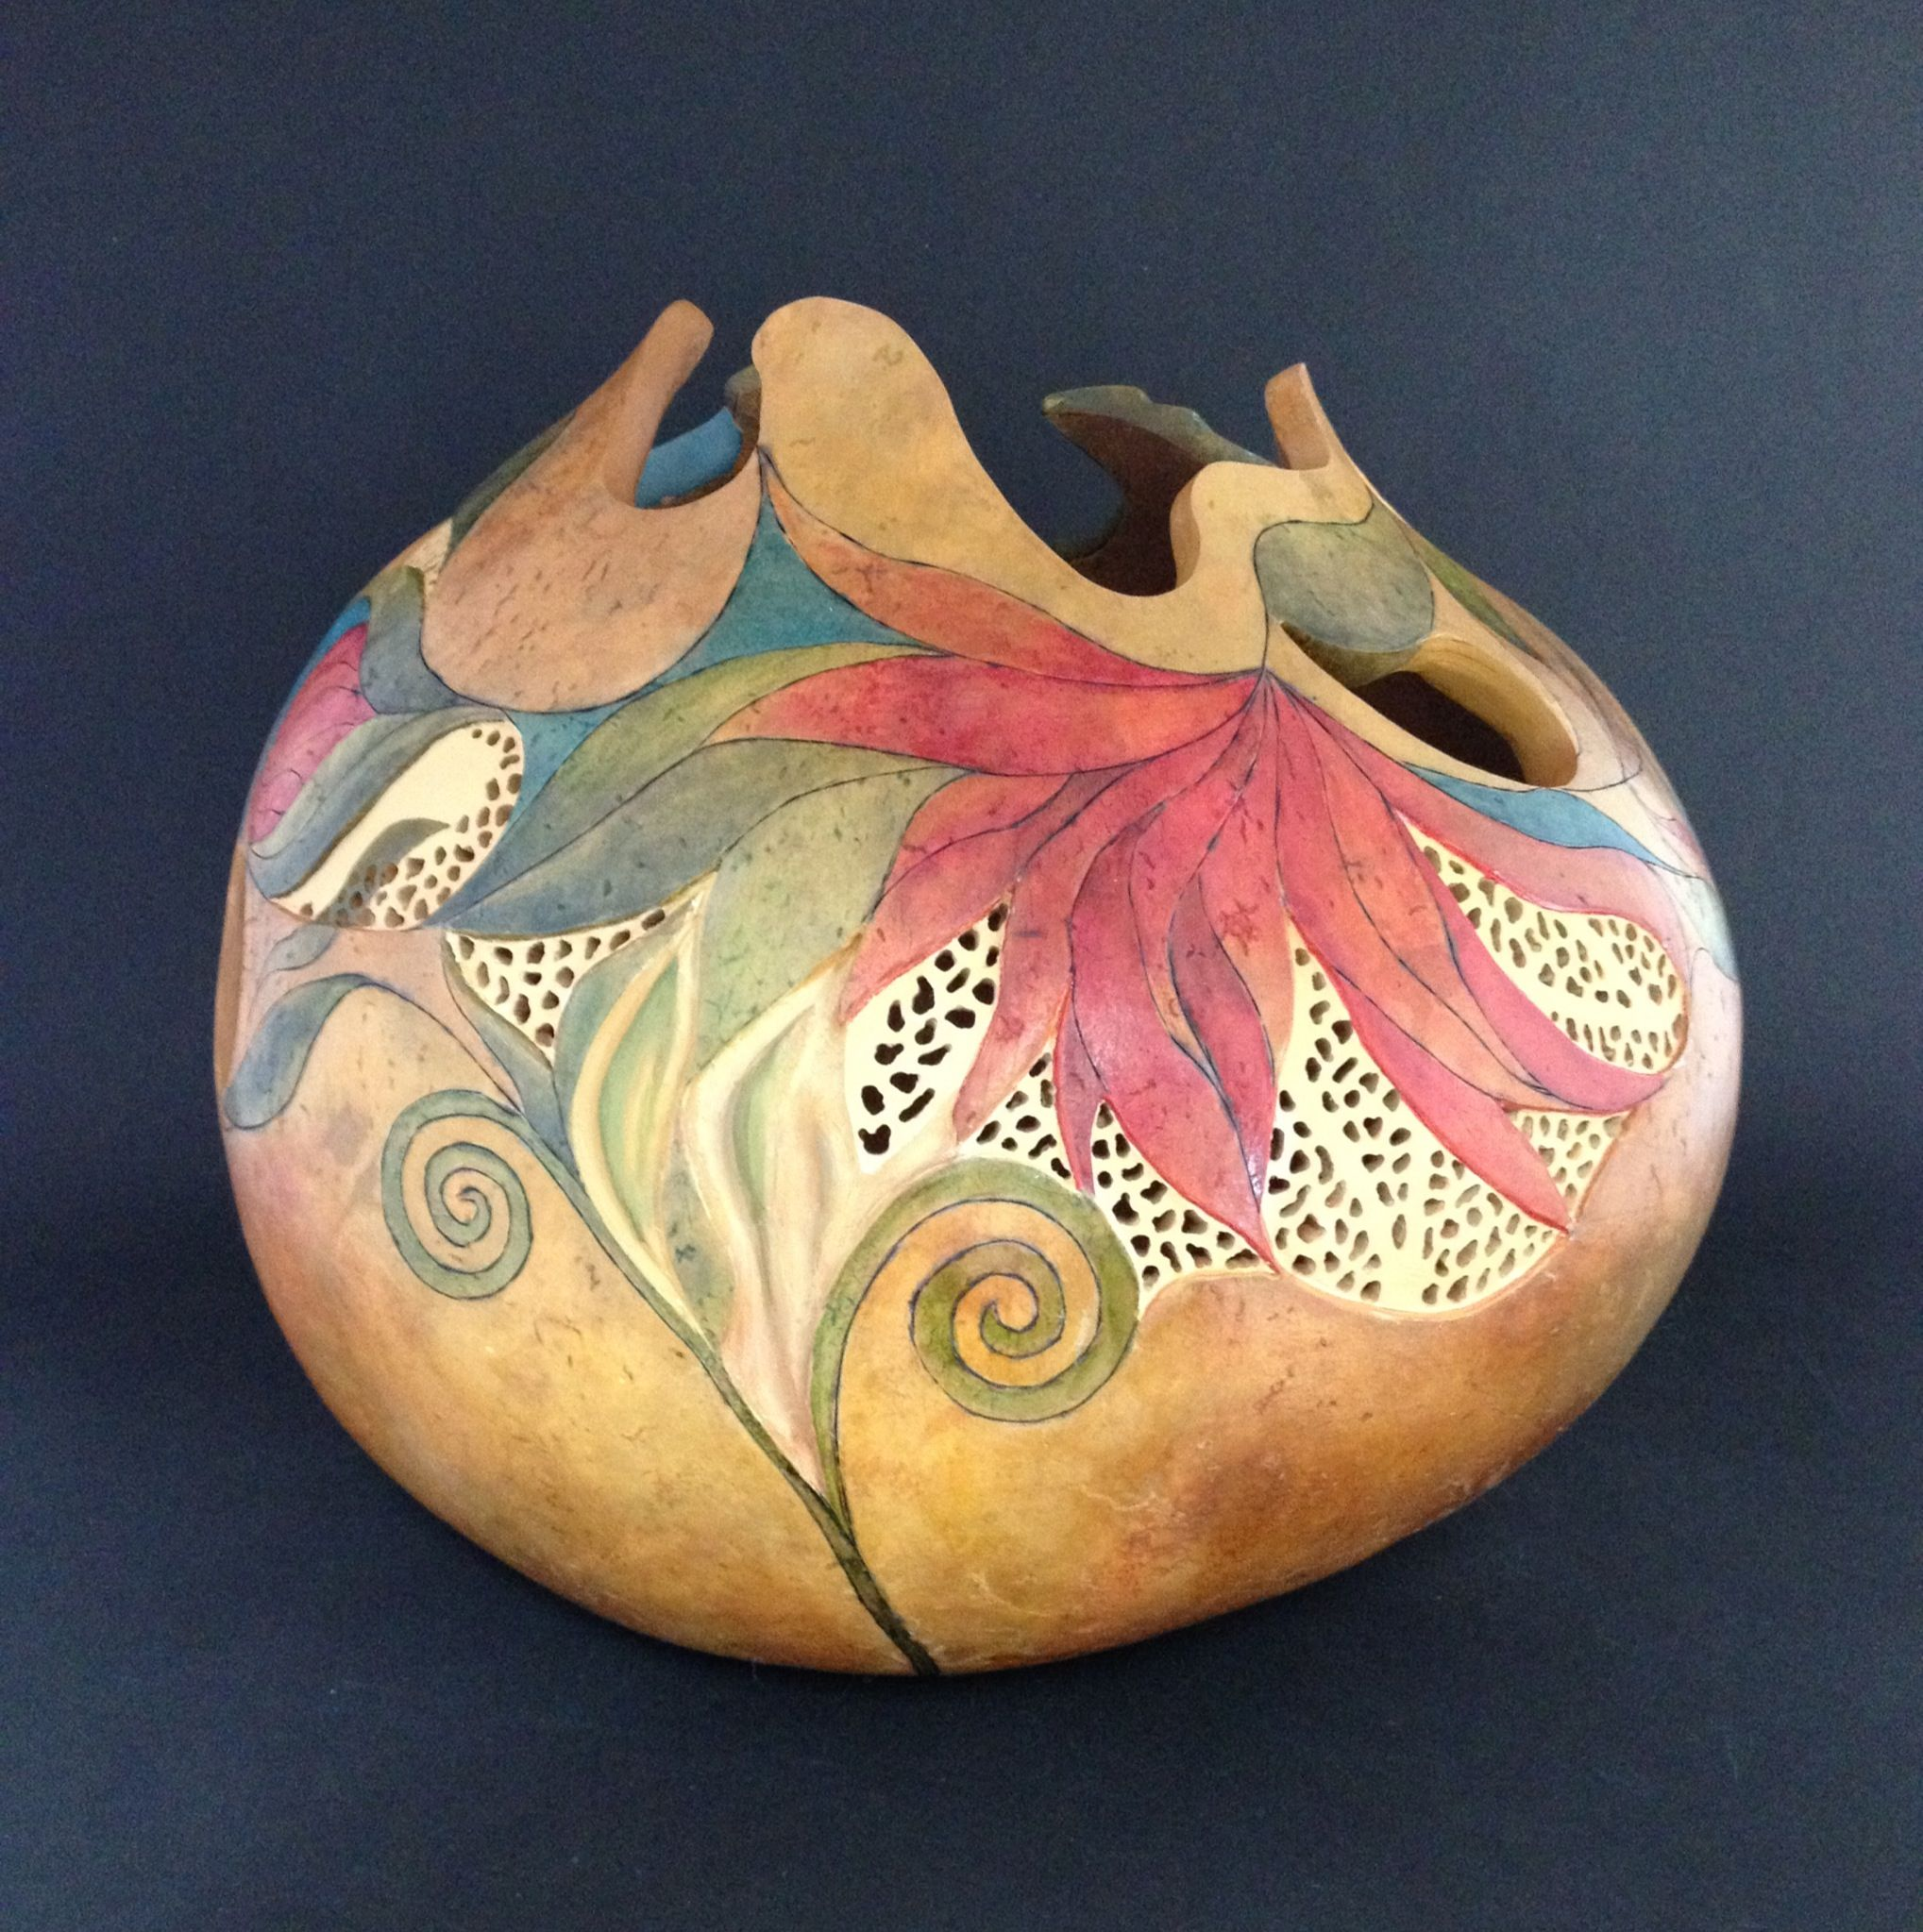 Floral expressions on a gourd. Fine gourd art by Mary Gehley